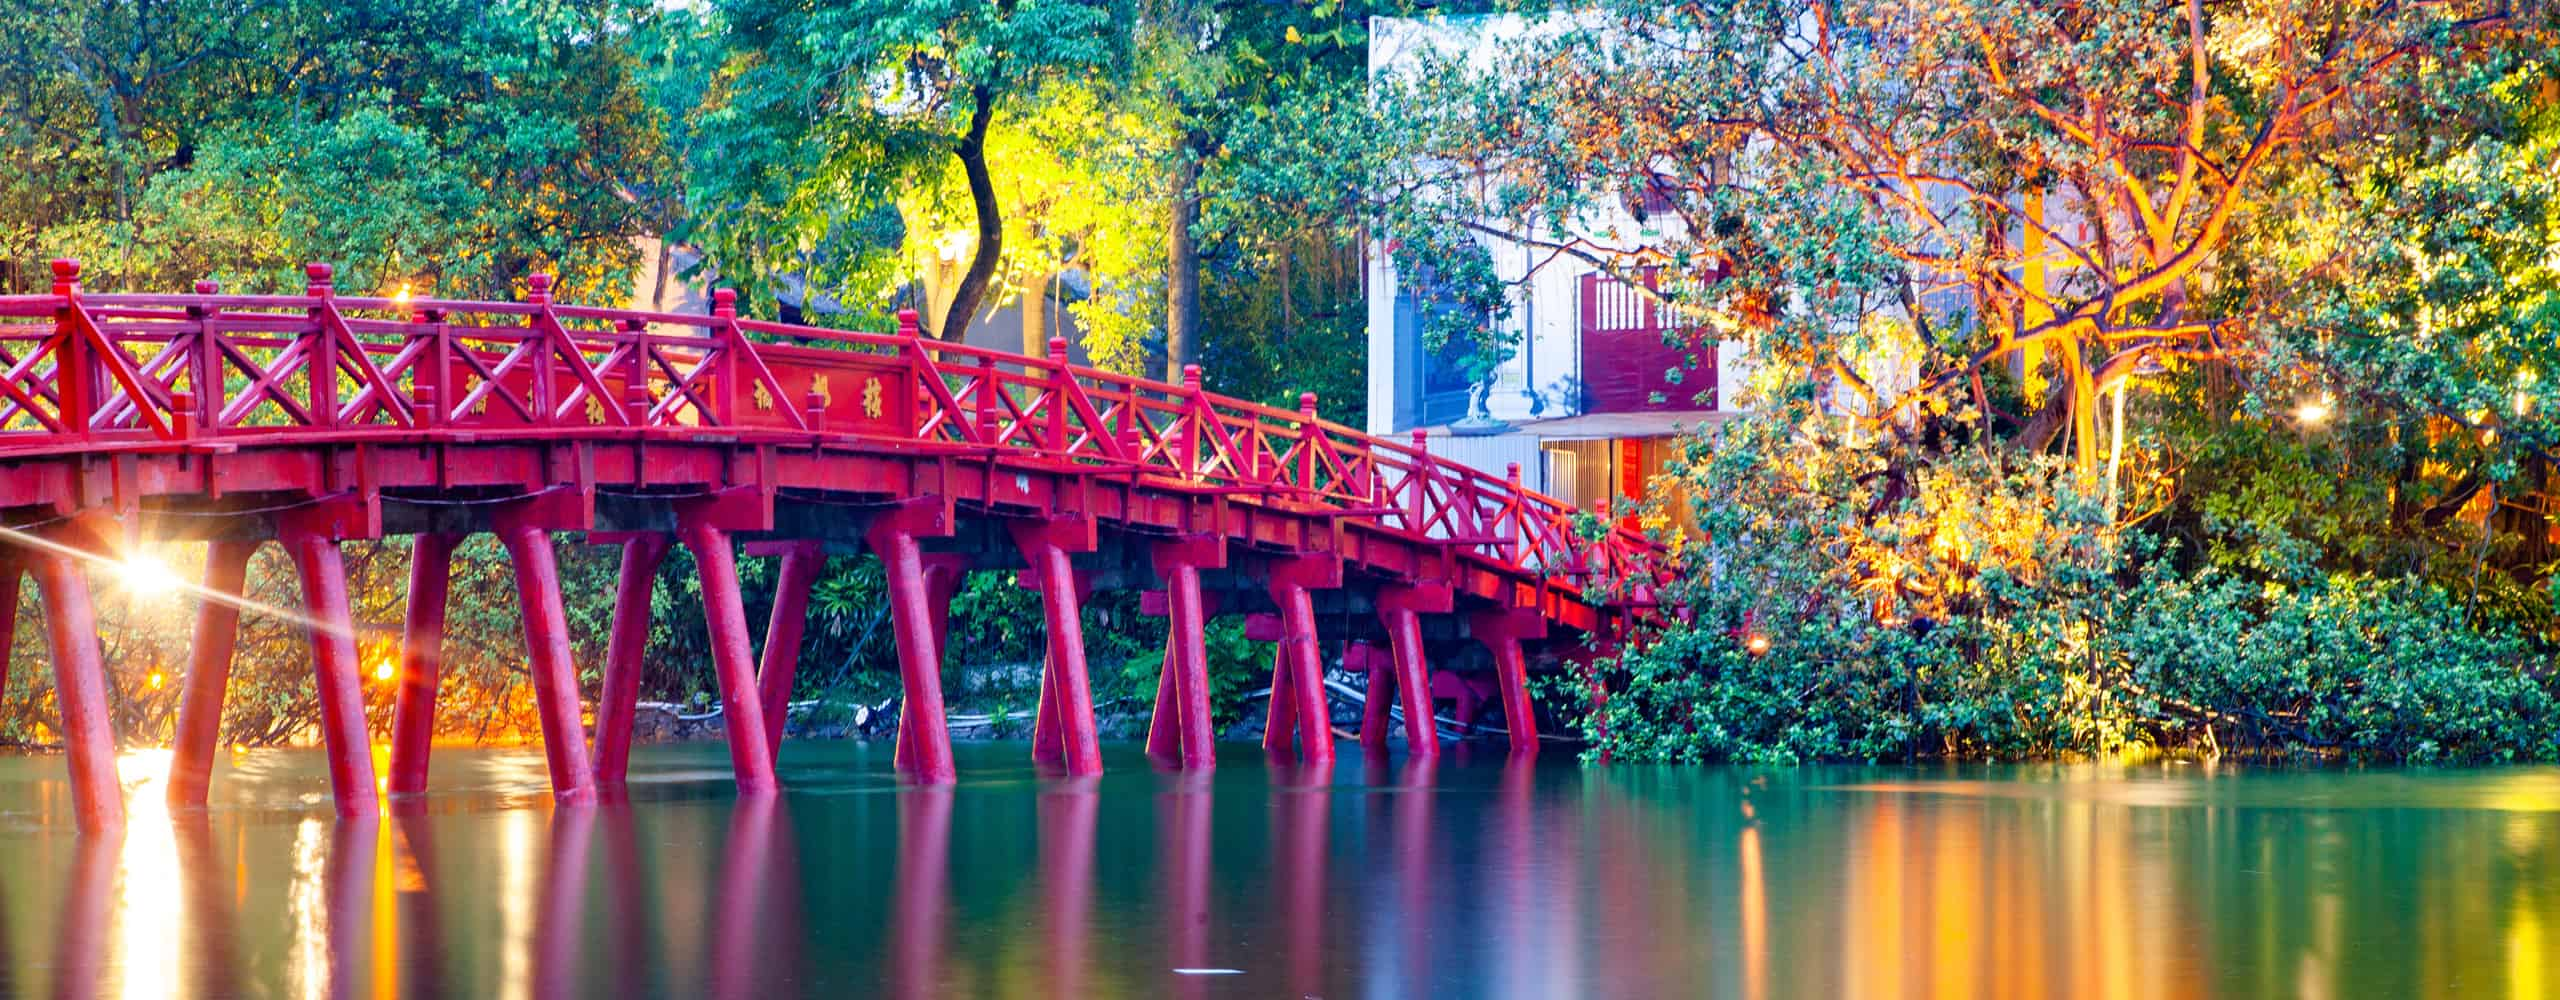 Elegant Red Bridge - Hanoi, Vietnam